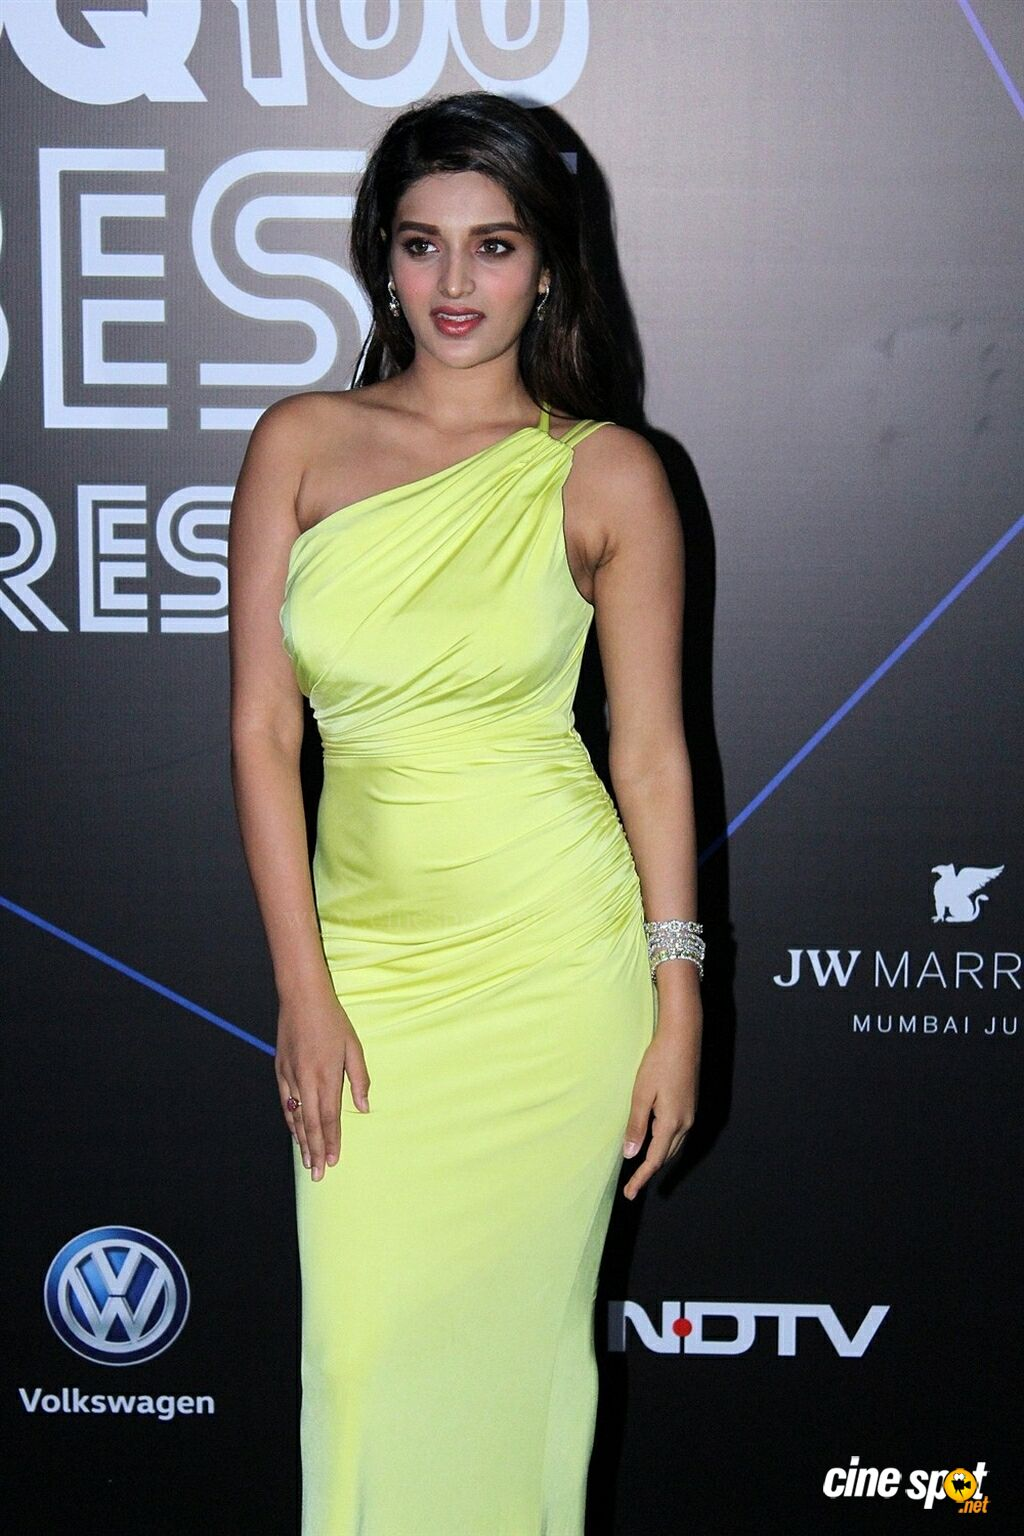 Nidhhi Agerwal at GQ Best Dressed Awards 2019 Red Carpet (4)